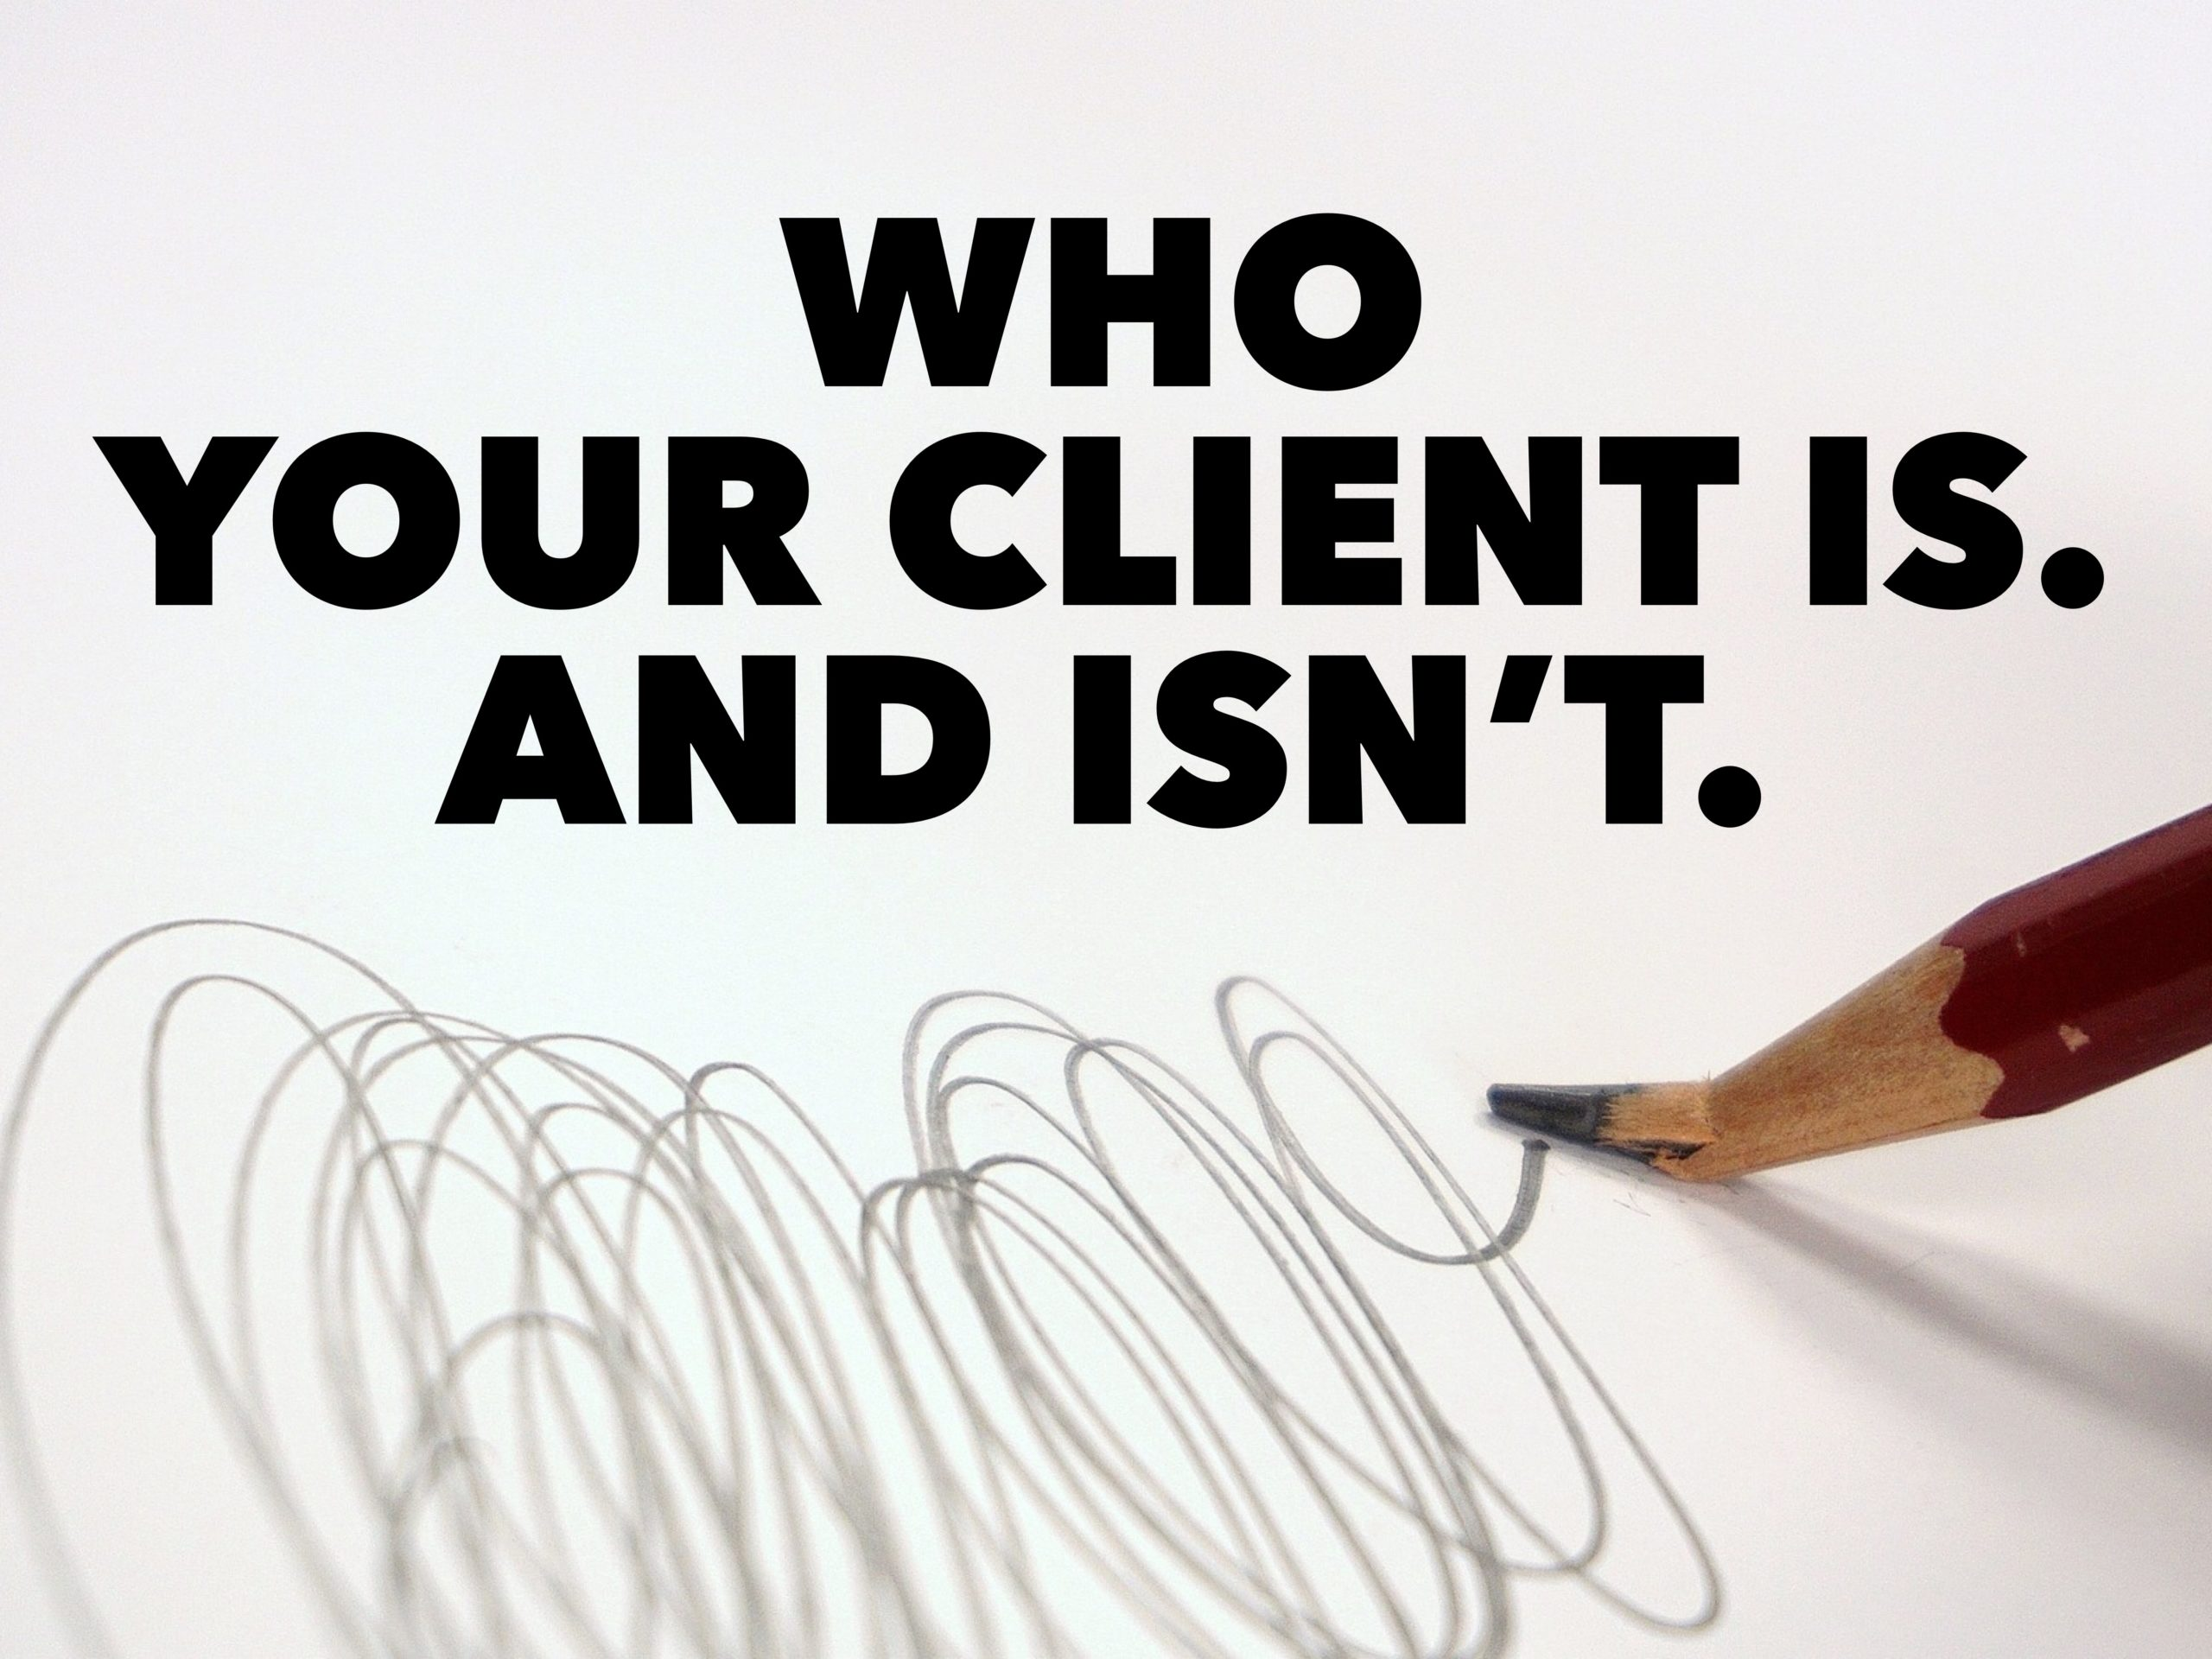 Who Your Client is. And Isn't.